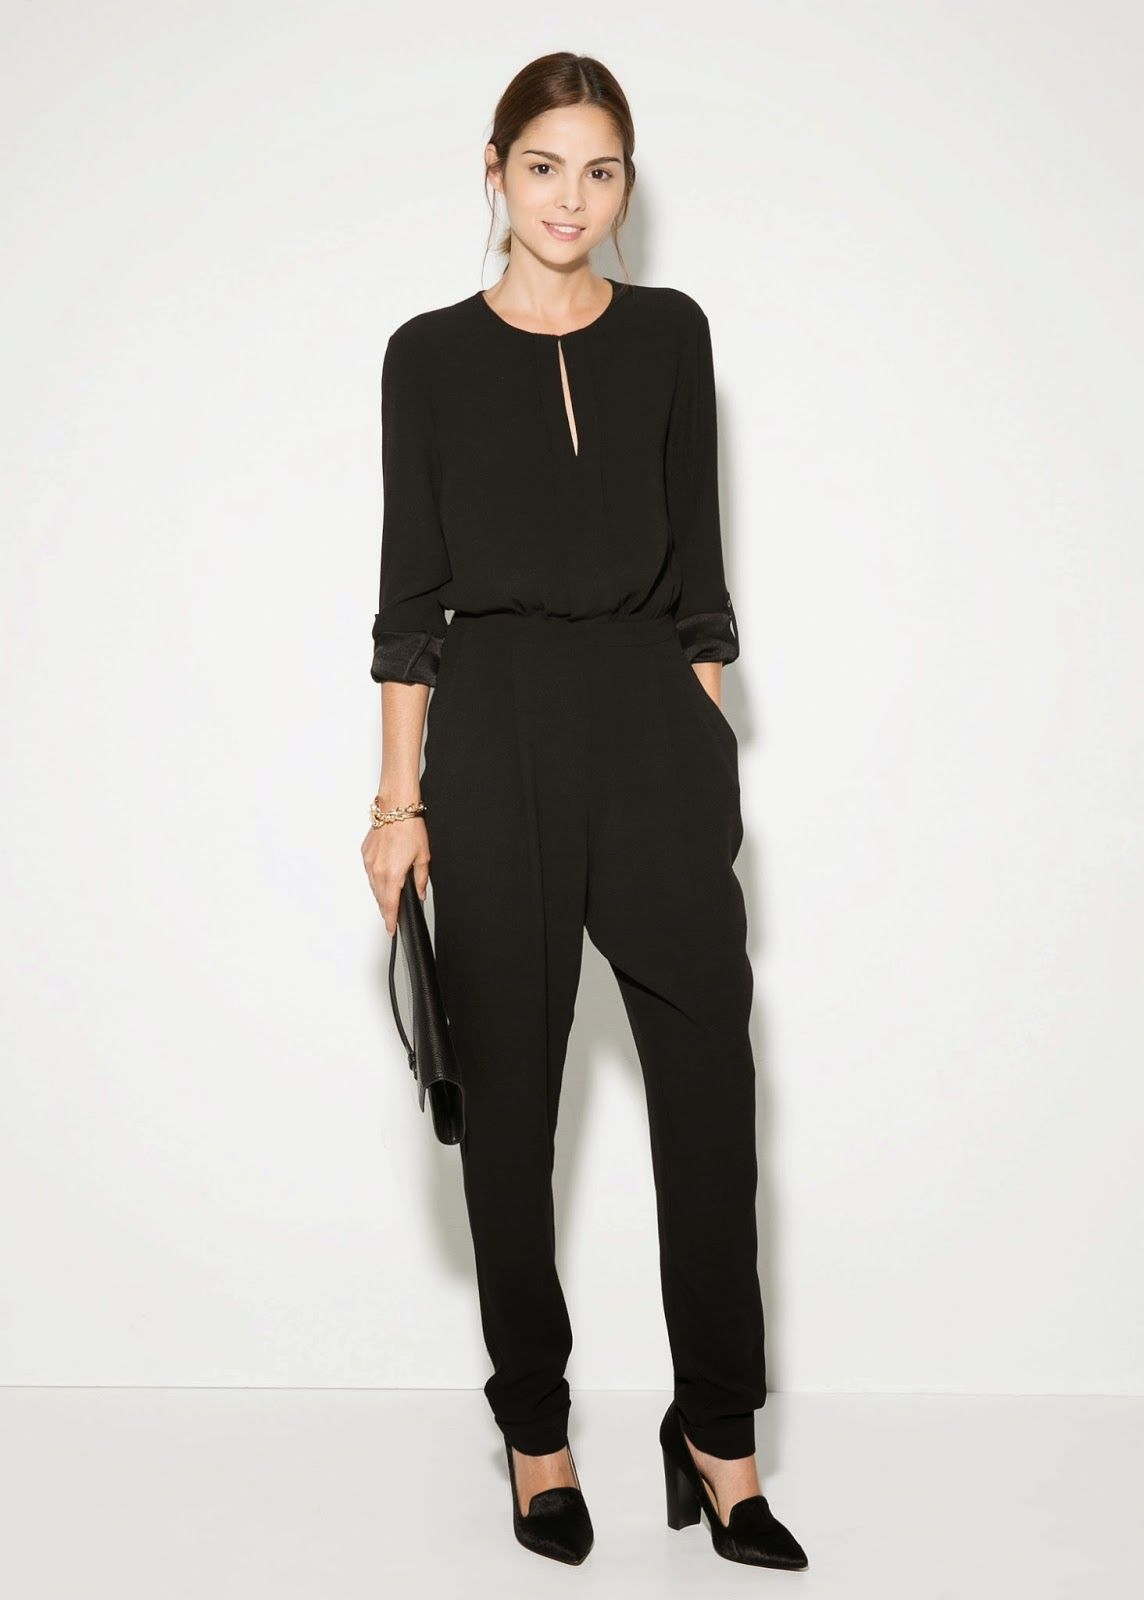 025d5911f52 Modest jumpsuit with sleeves